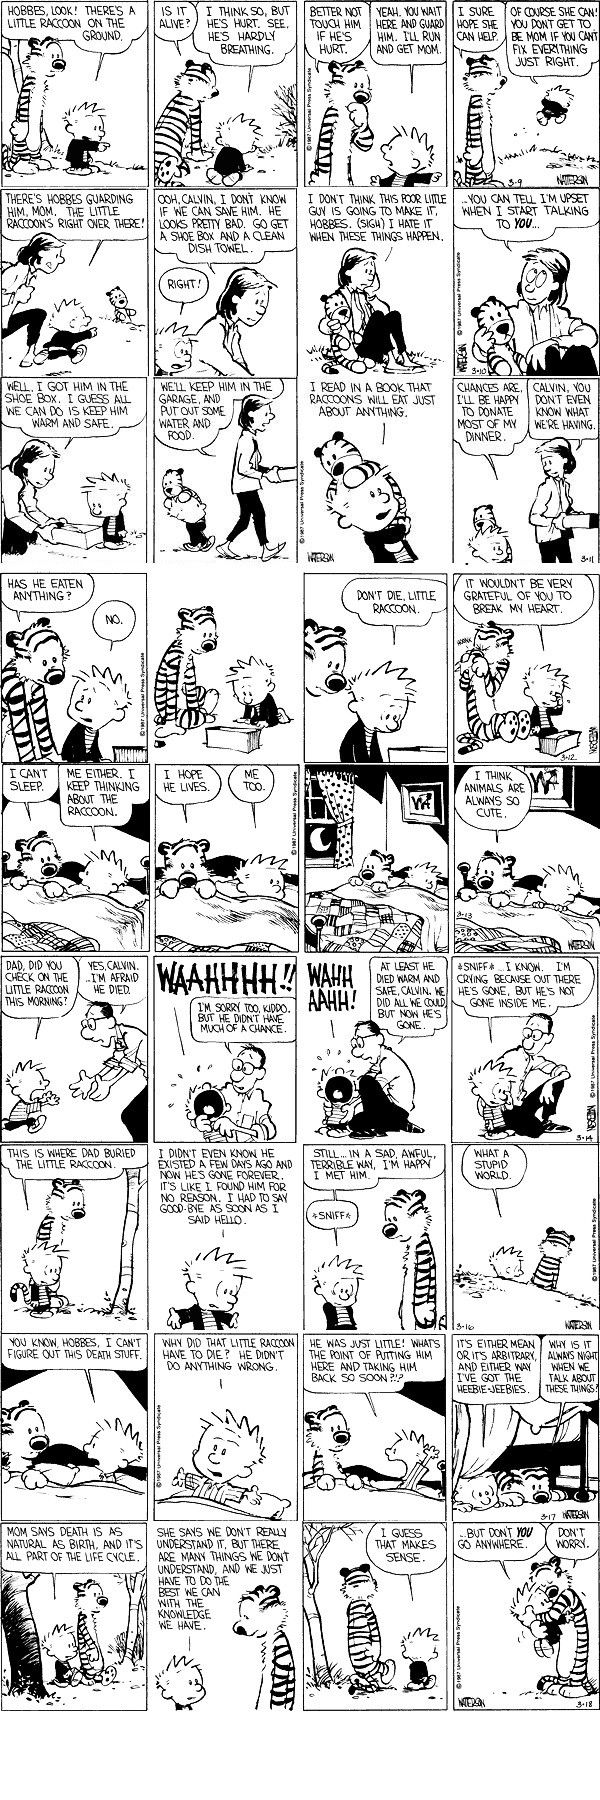 we all gotta do the best we can with what little knowledge we have ...    http://www.elephantjournal.com/2012/01/calvin-hobbes-on-death/#    http://www.elephantjournal.com/2011/08/big-bird-learns-about-death/